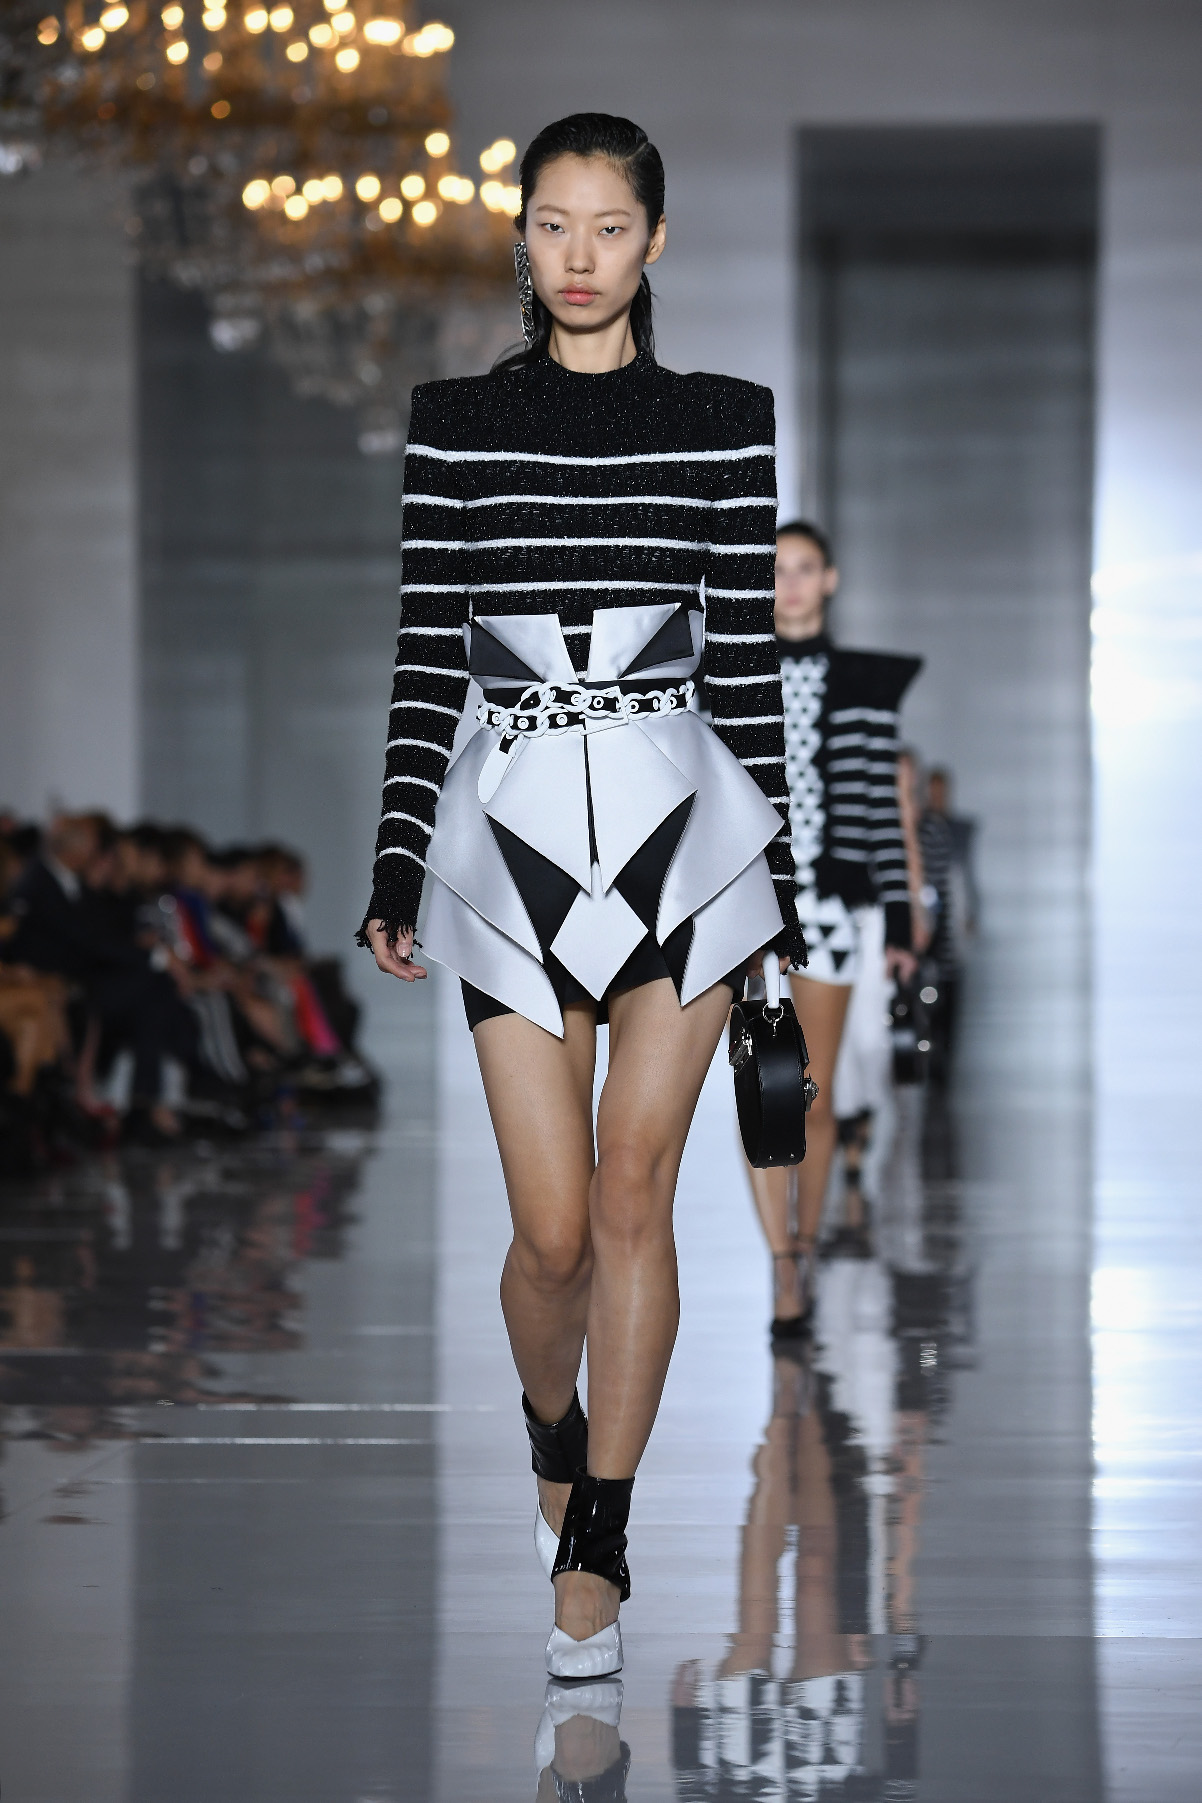 PARIS, FRANCE - SEPTEMBER 28:  A model walks the runway during the Balmain show as part of the Paris Fashion Week Womenswear Spring/Summer 2019 on September 28, 2018 in Paris, France.  (Photo by Pascal Le Segretain/Getty Images)